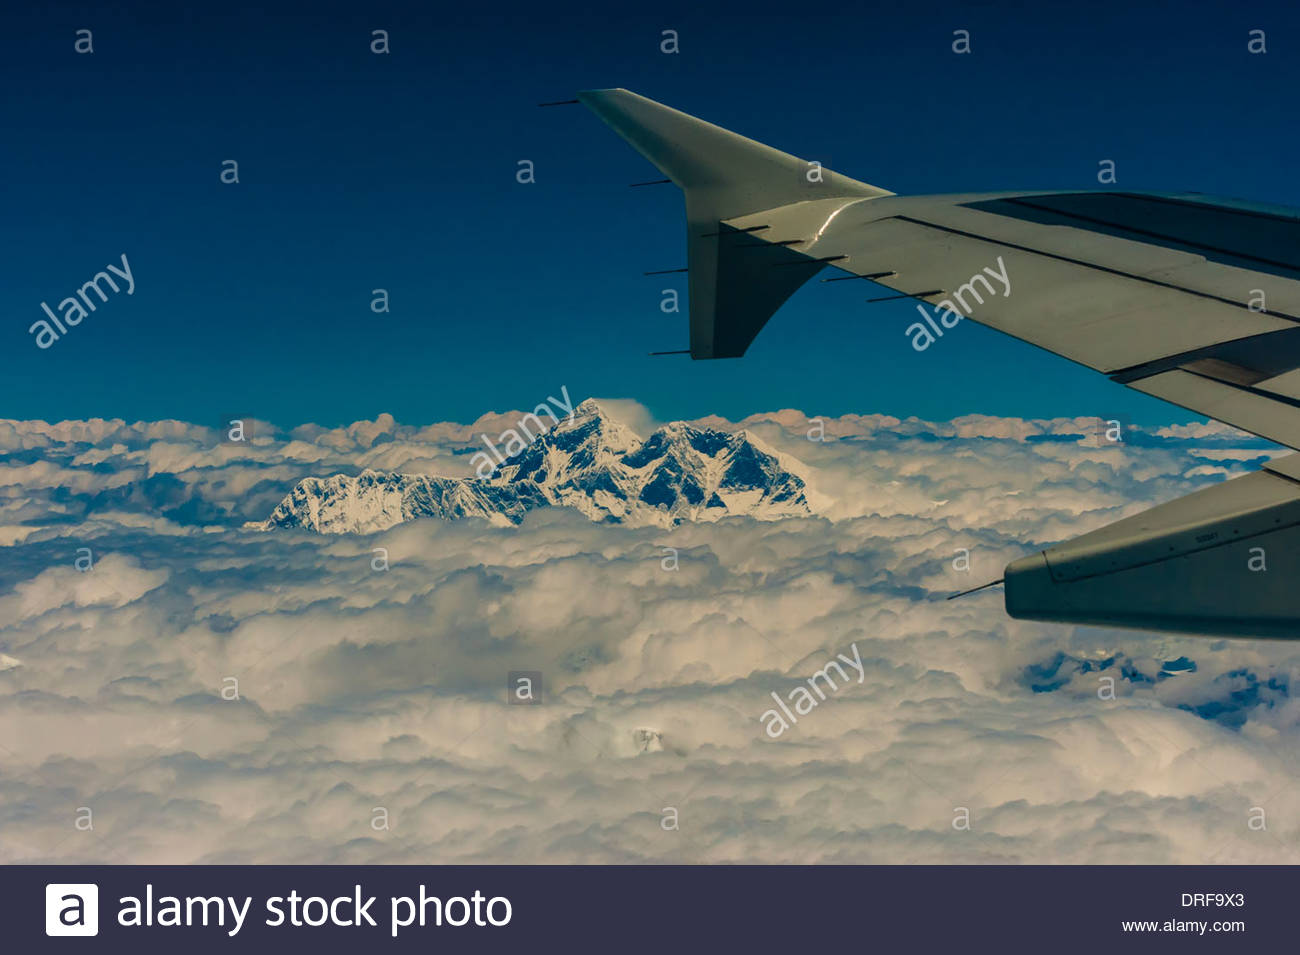 Aerial view of Mt. Everest (the tallest mountain in the world at 29,029 feet) in the Himalayas on a flight between Kathmandu, Nepal and Lhasa, Tibet (China). - Stock Image